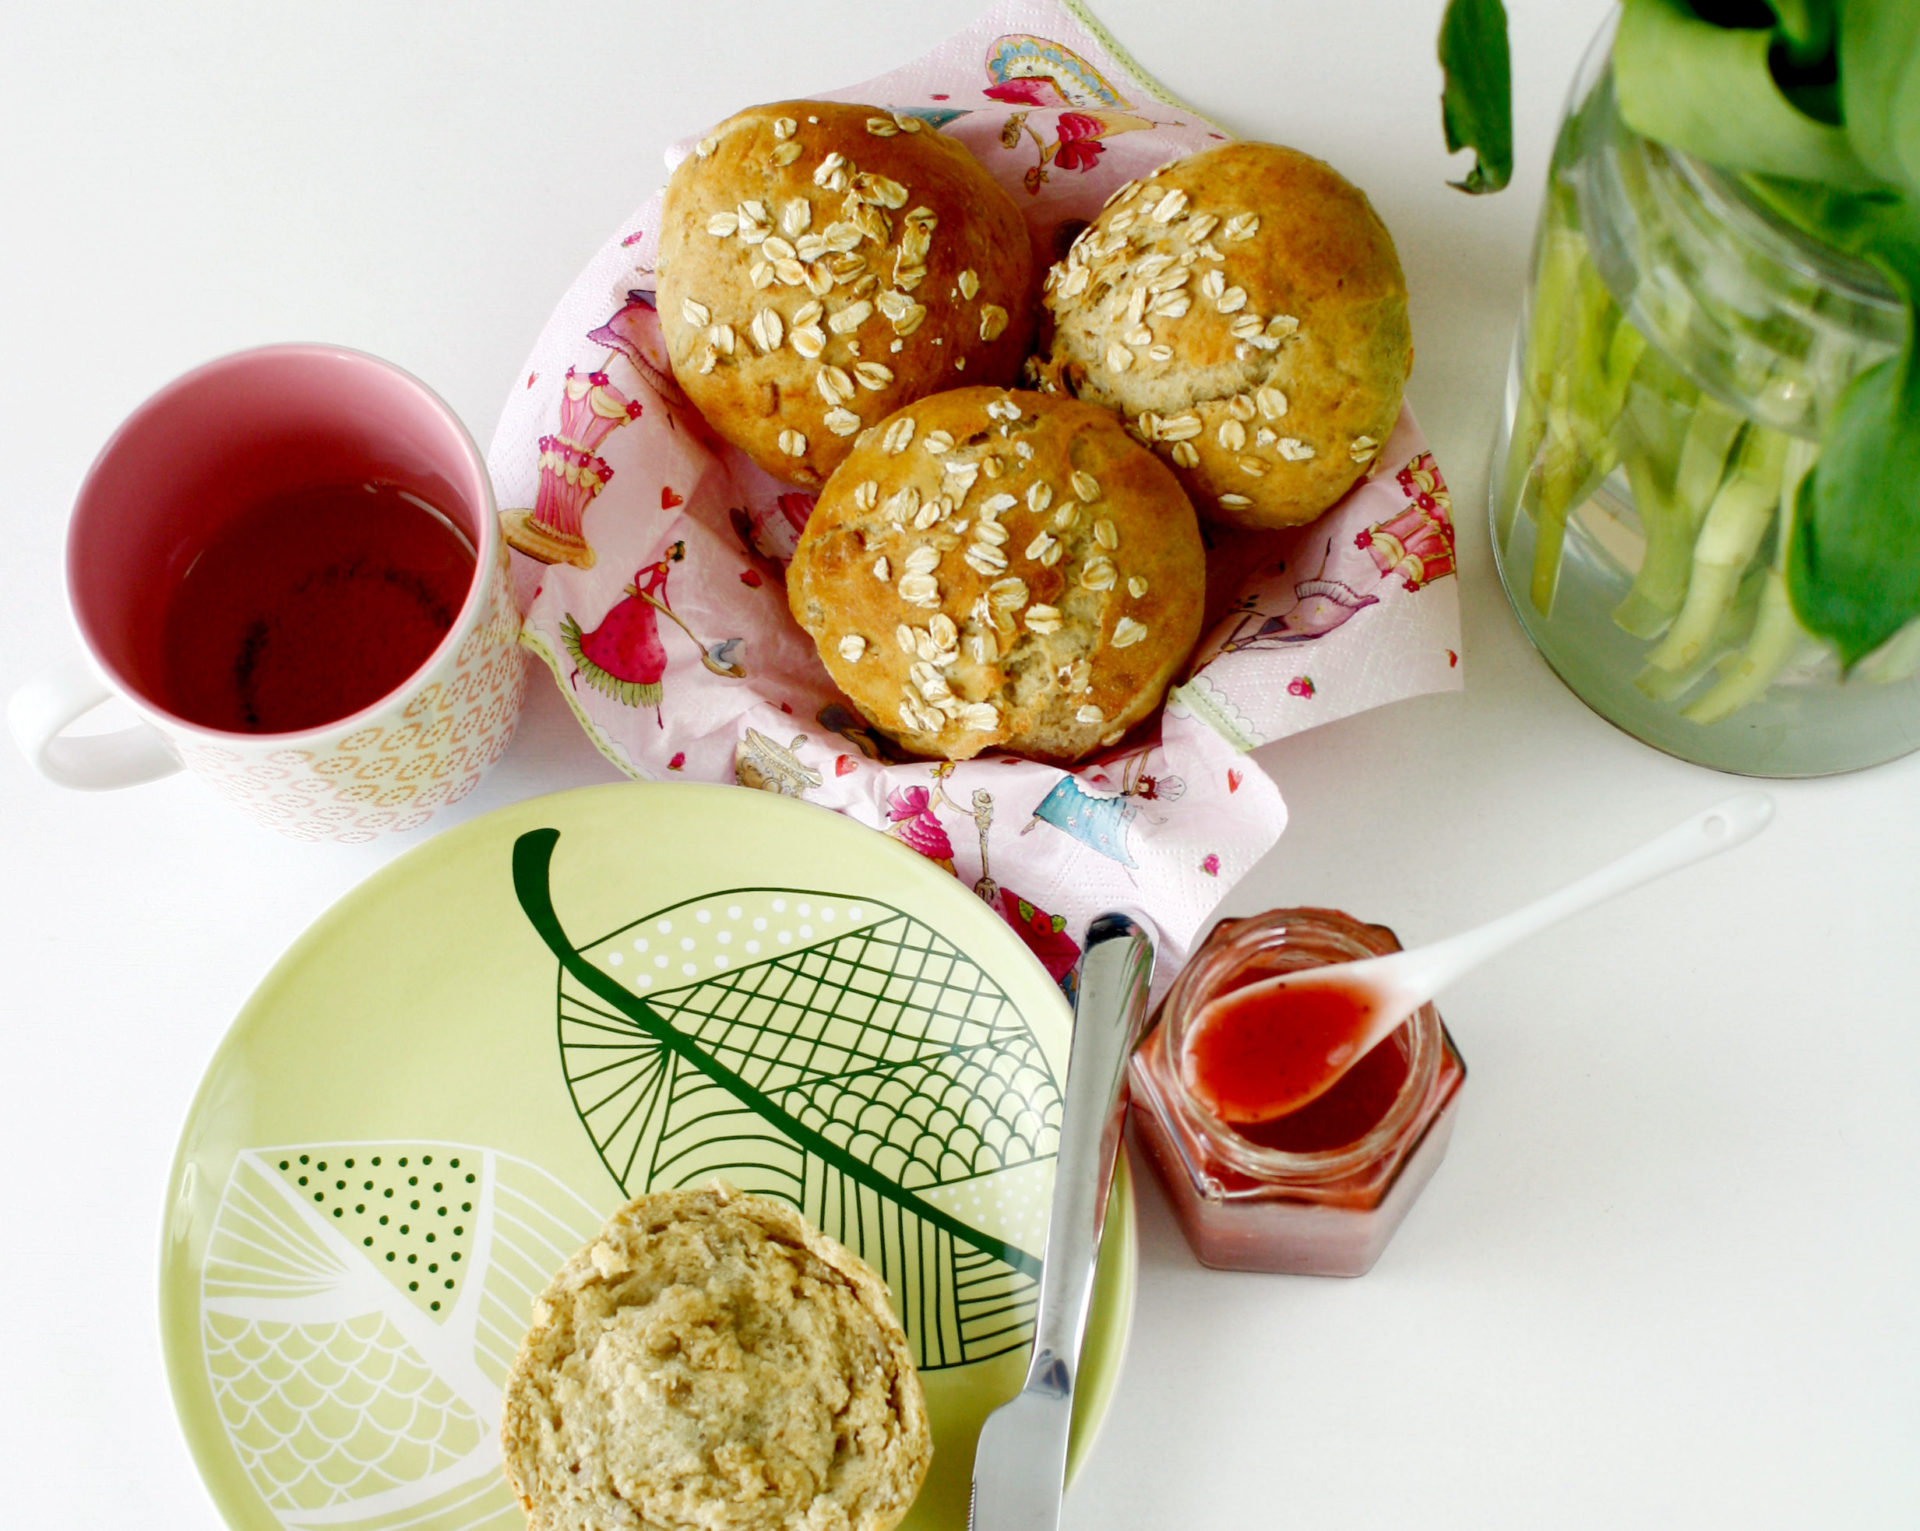 Dinkelbrötchen mit Haferflocken // Buns with spelled and oats by http://babyrockmyday.com/dinkelbroetchen/